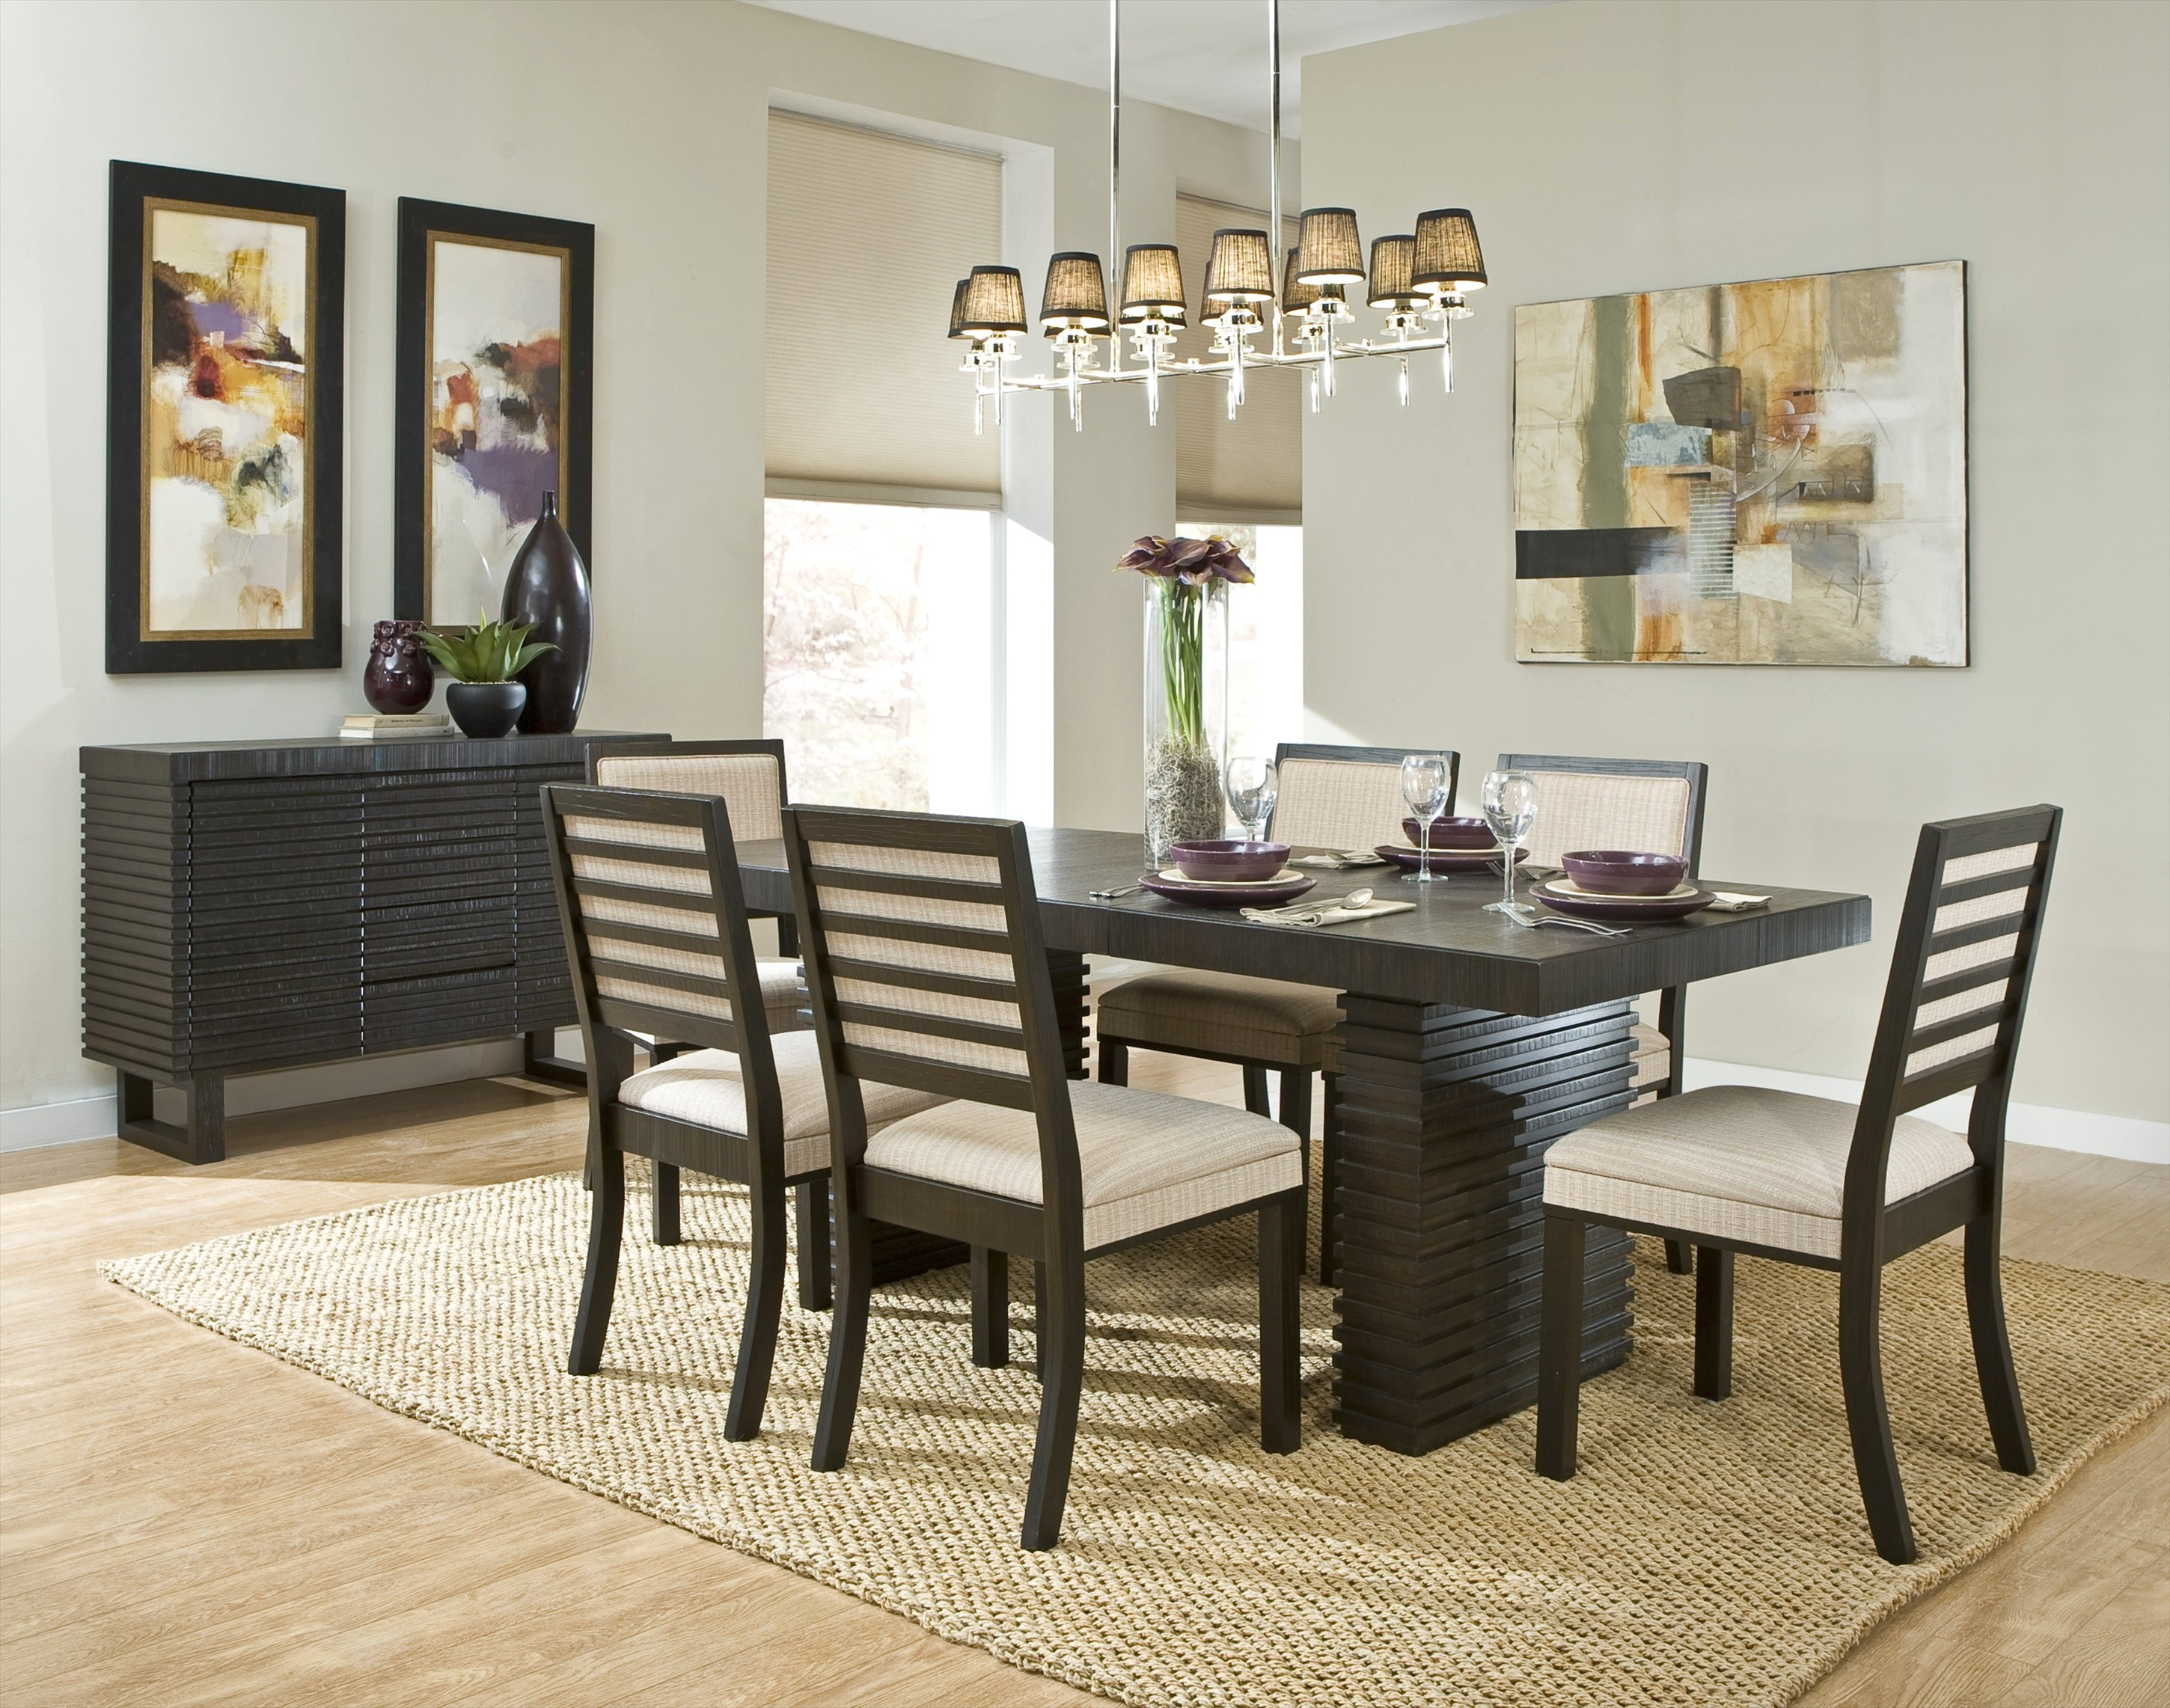 modern dining chandelier photo - 1